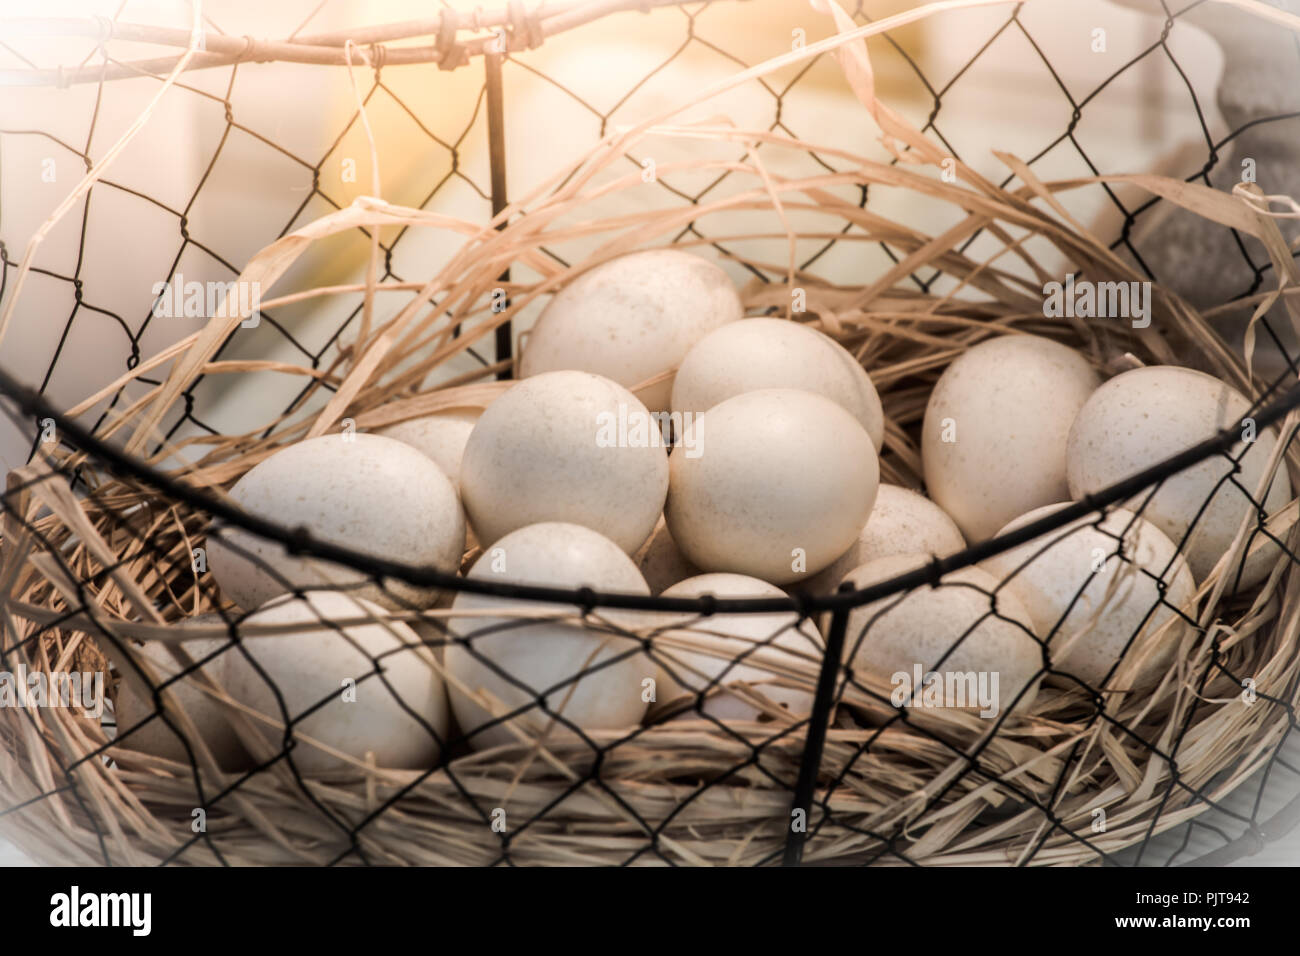 brown eggs at hay nest in chicken farm presented in the form of close-up photography and vintage tones. - Stock Image